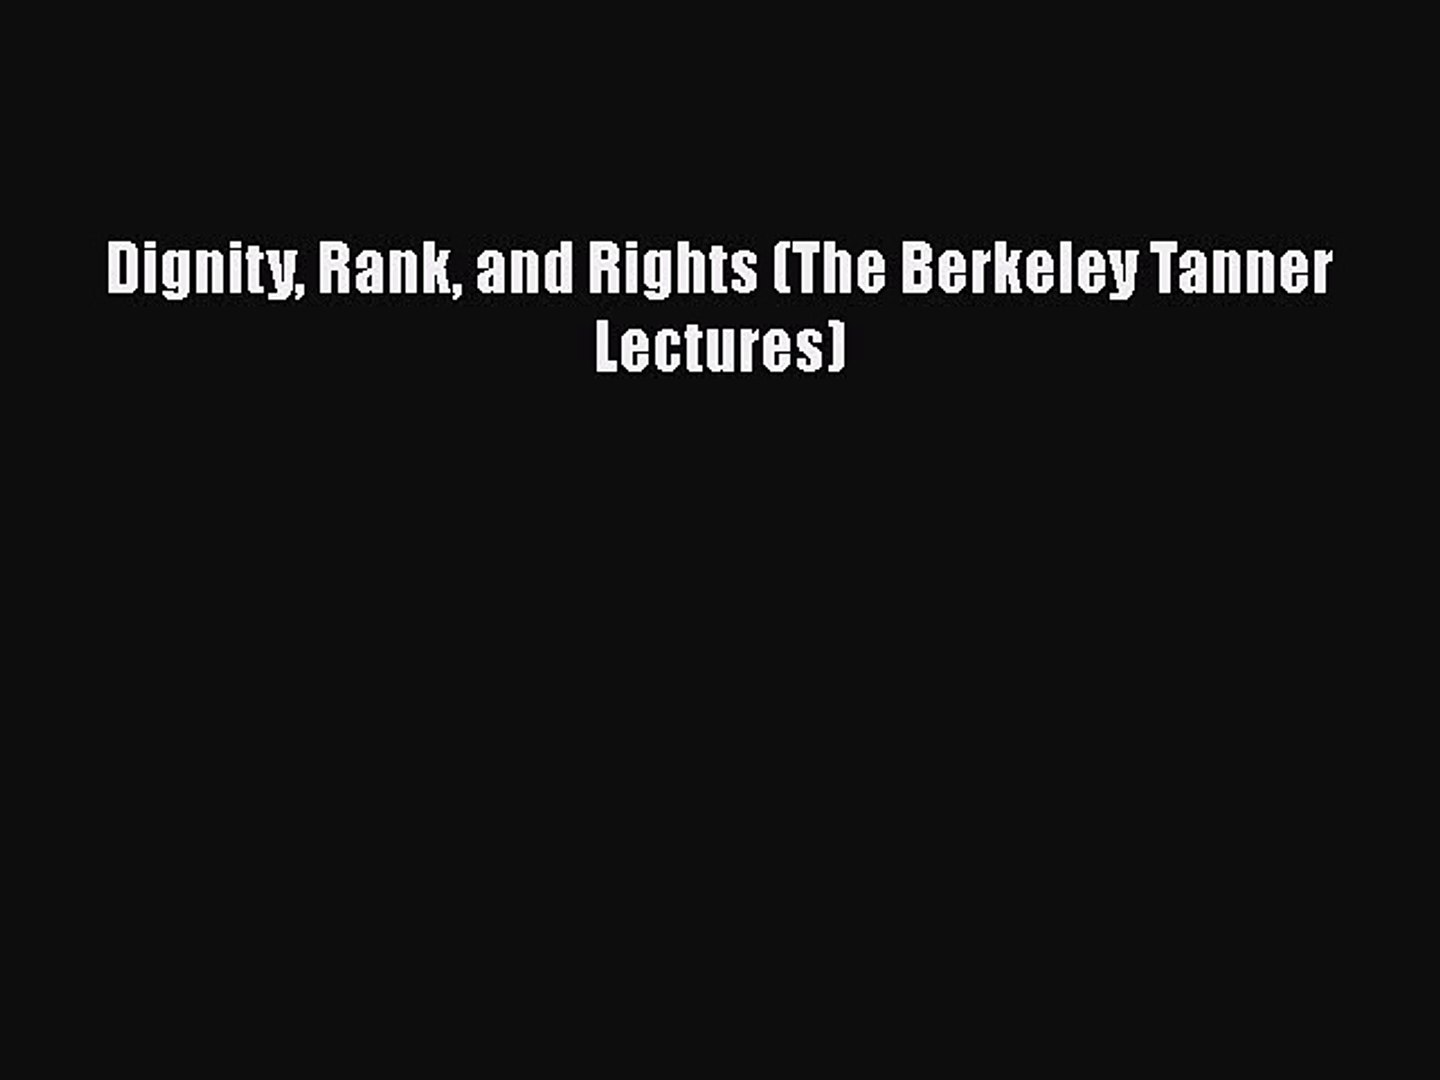 Read Book Dignity Rank and Rights (The Berkeley Tanner Lectures) ebook textbooks